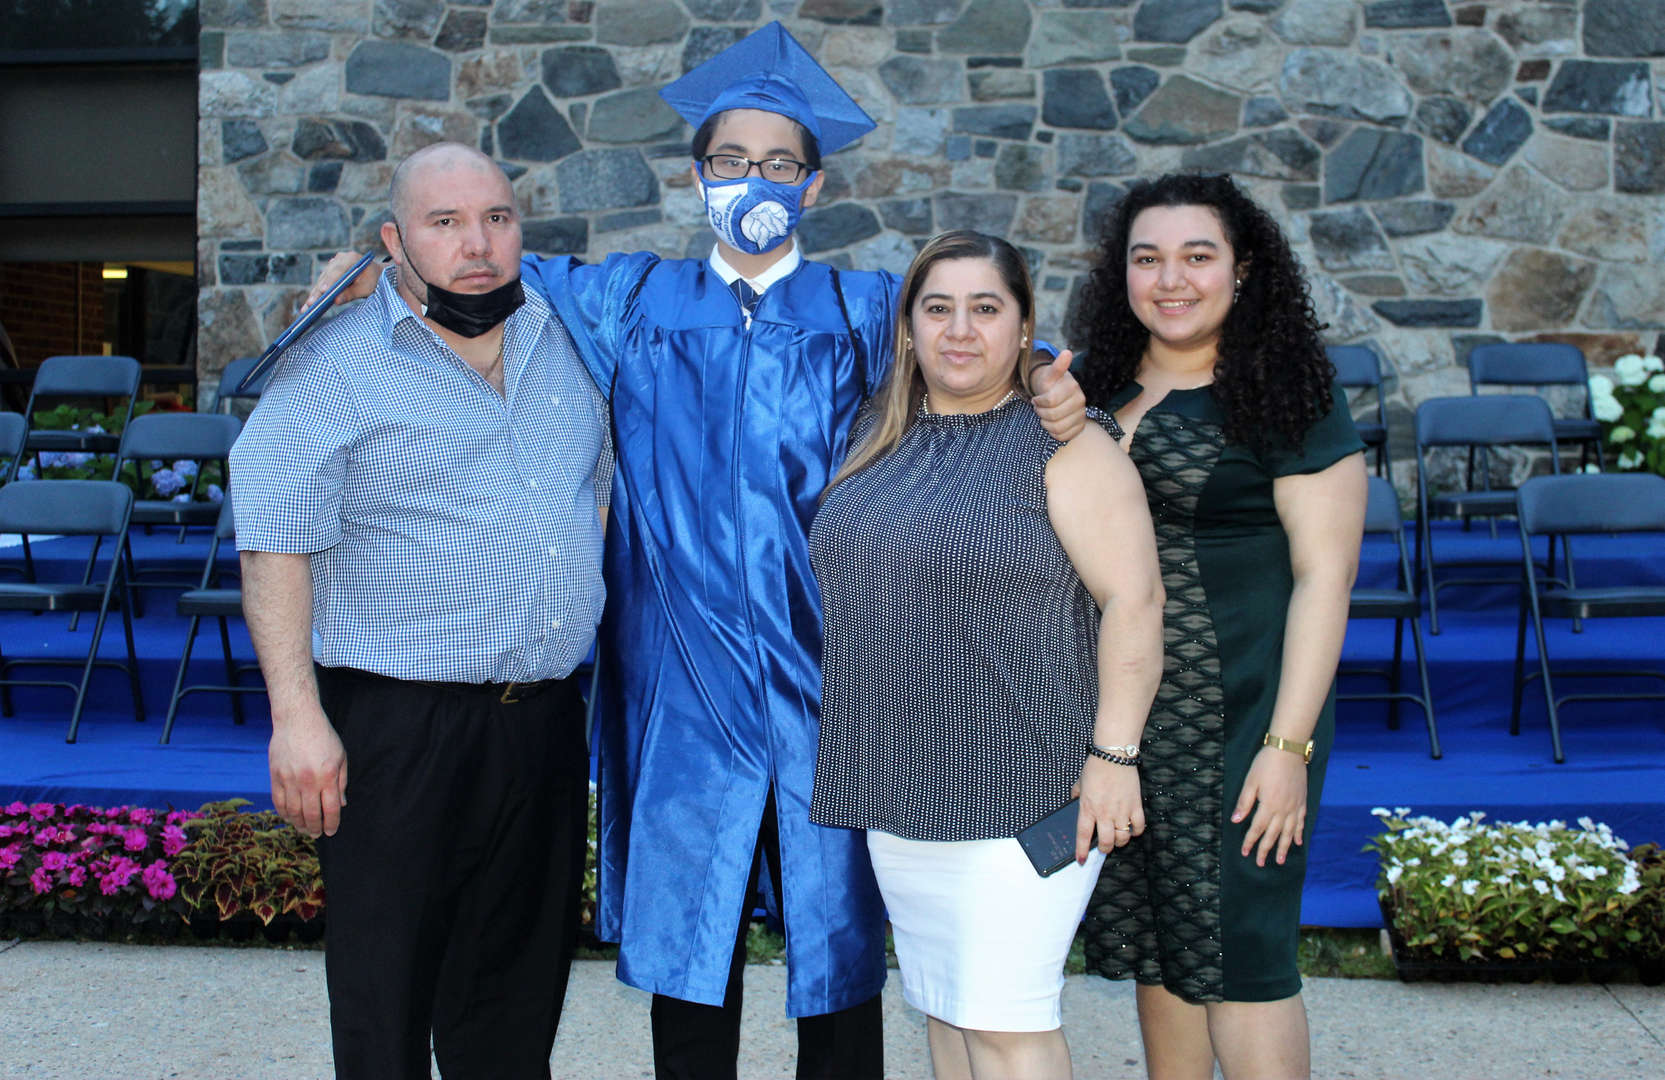 Eighth-grade boy poses with family after the ceremony.